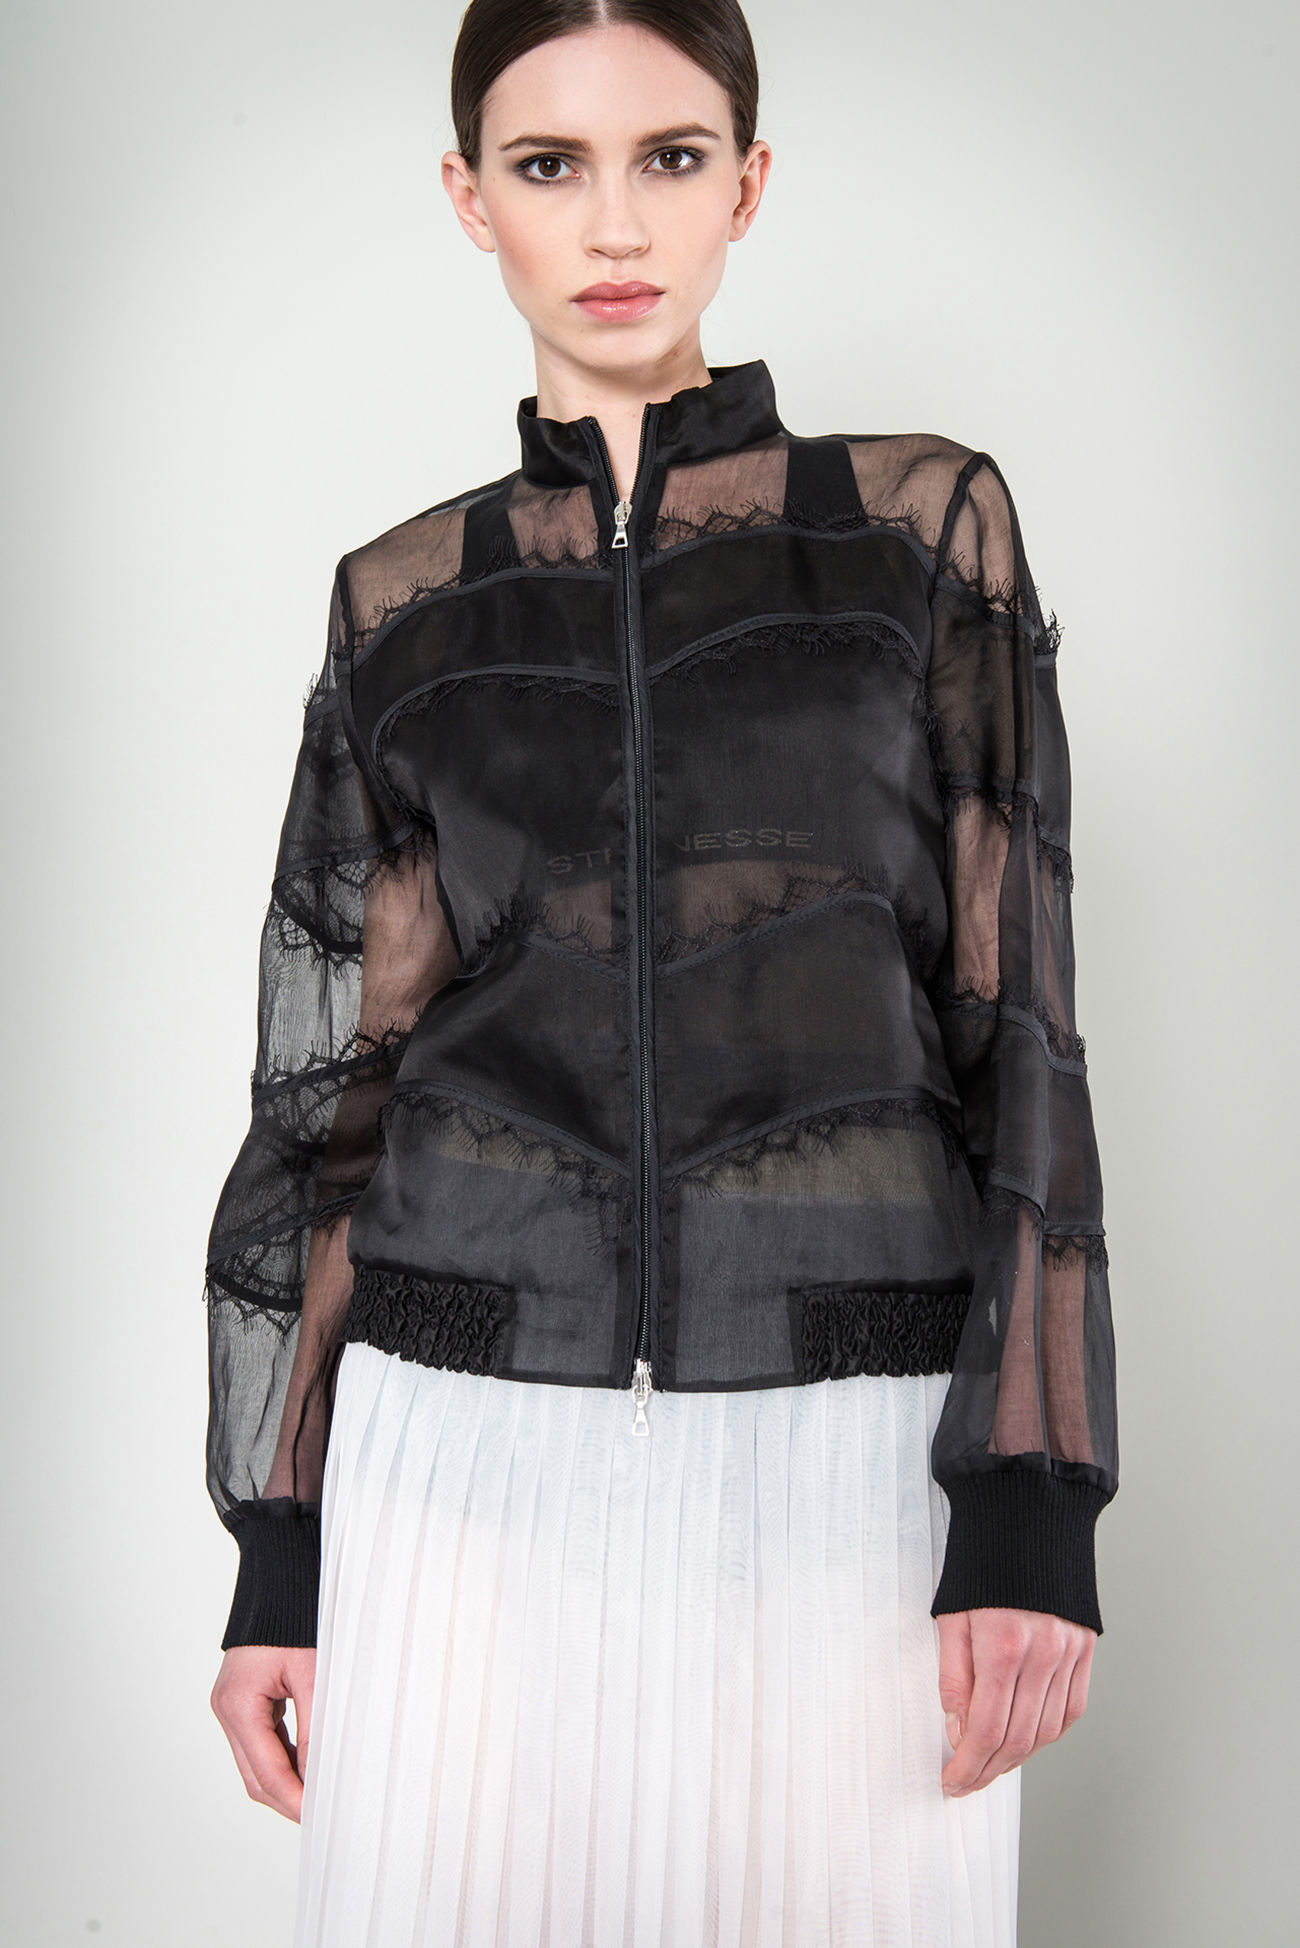 Blouson made of cotton organza